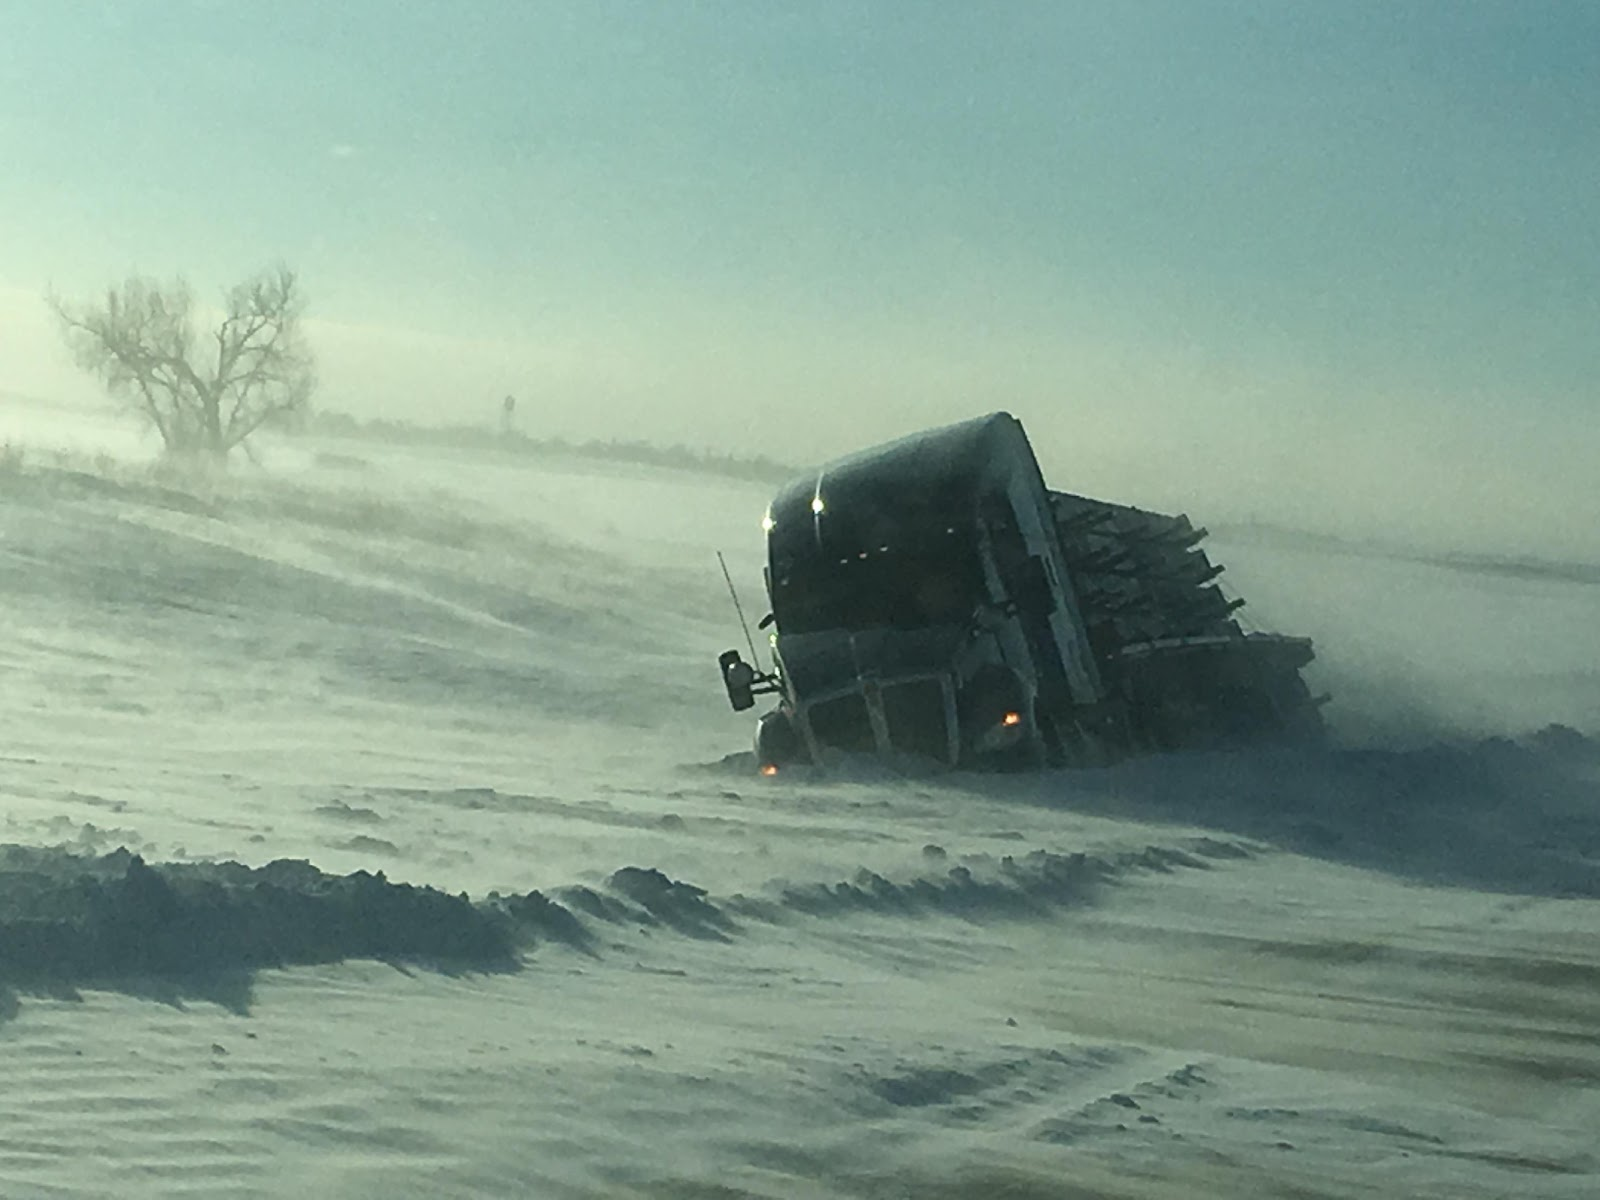 a big rig trapped in the snow